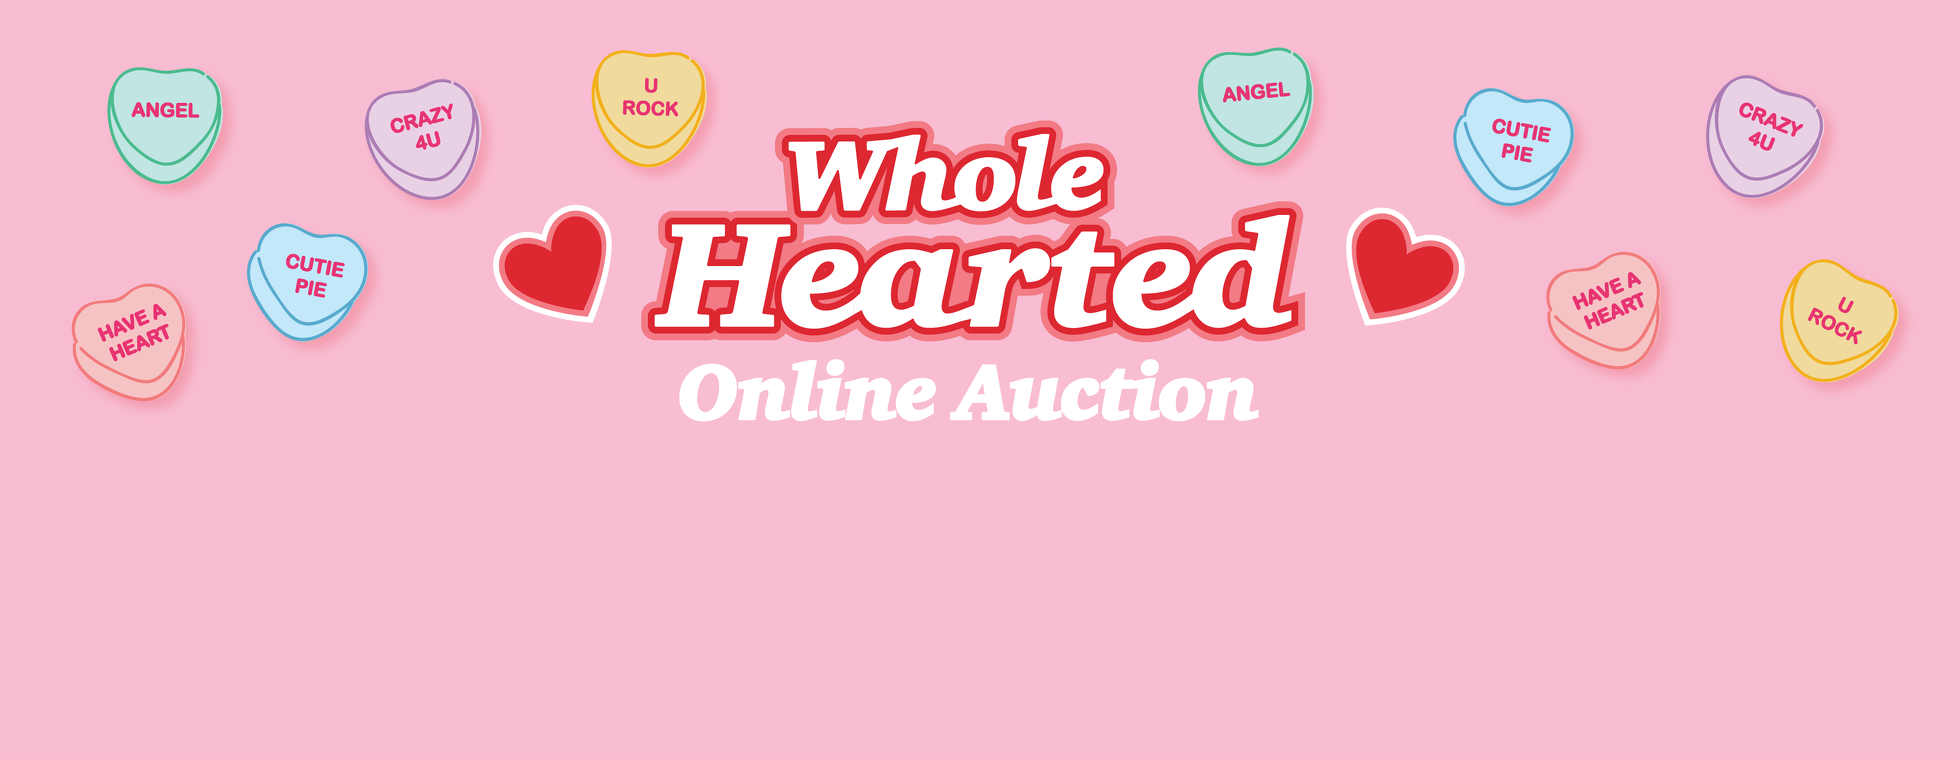 Soroptimist International of Truckee Meadows Presents the Whole Hearted Online Auction